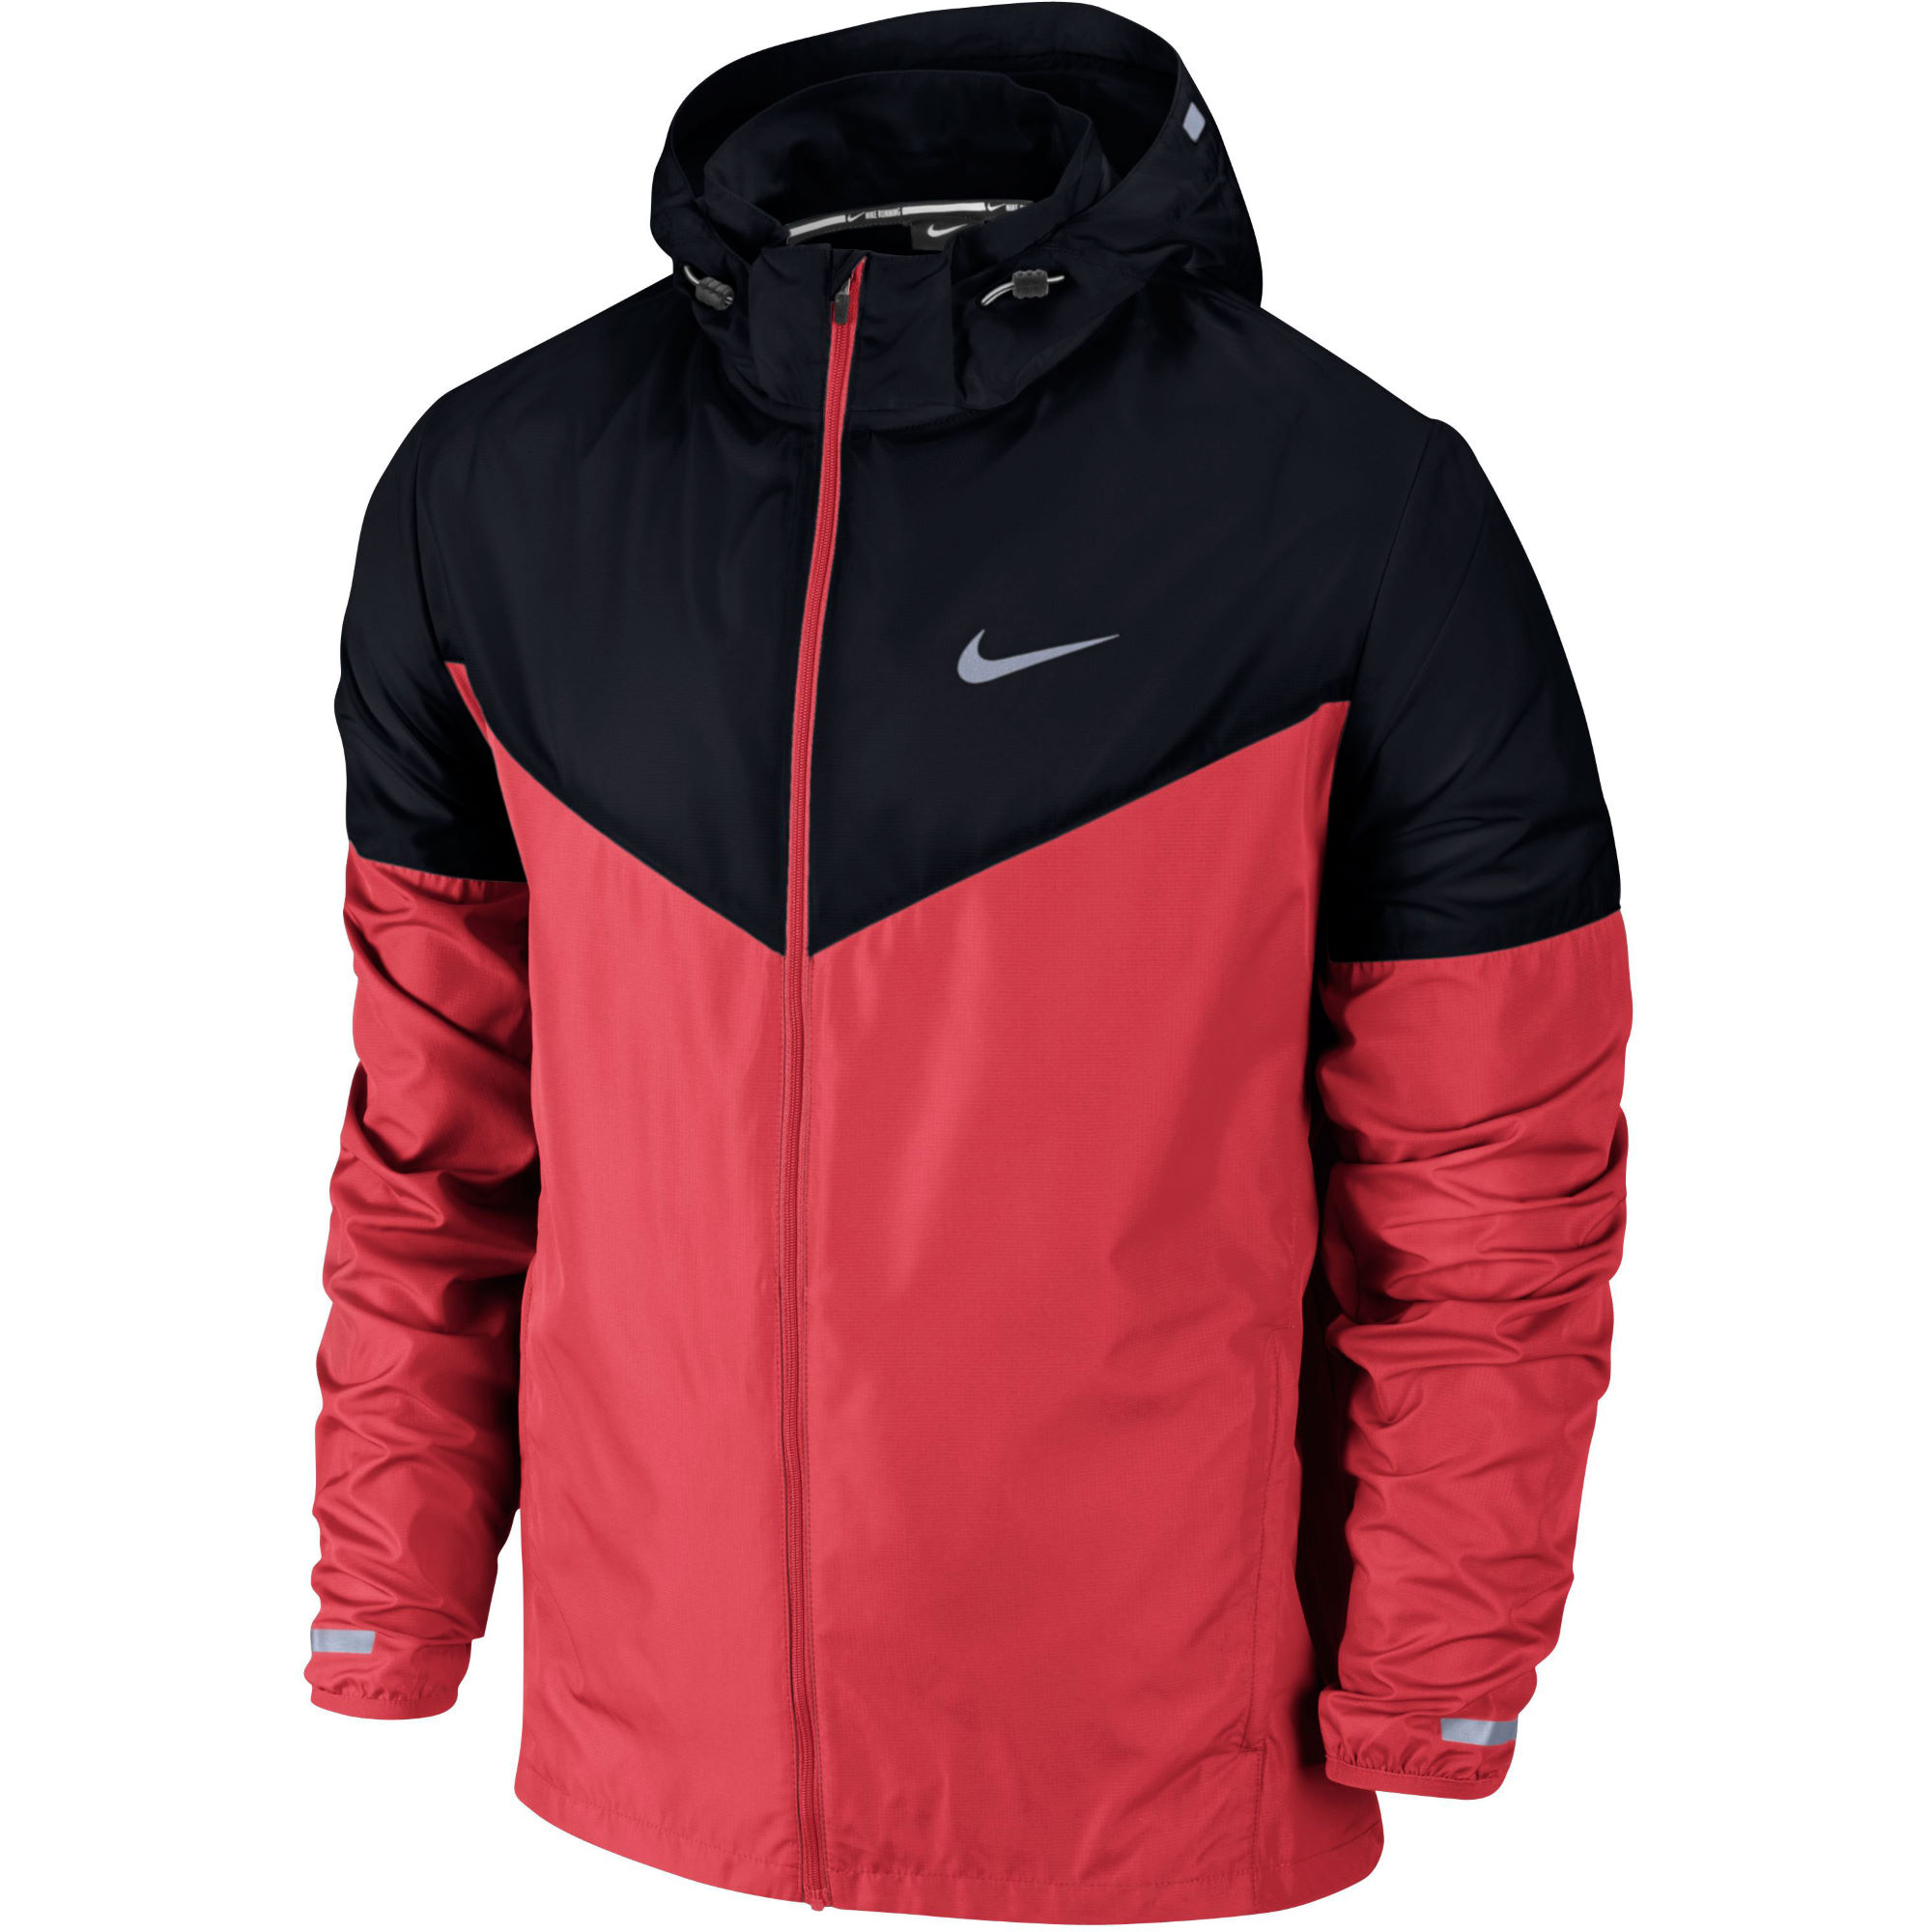 vestes de running coupe vent nike vapor jacket su15 wiggle france. Black Bedroom Furniture Sets. Home Design Ideas